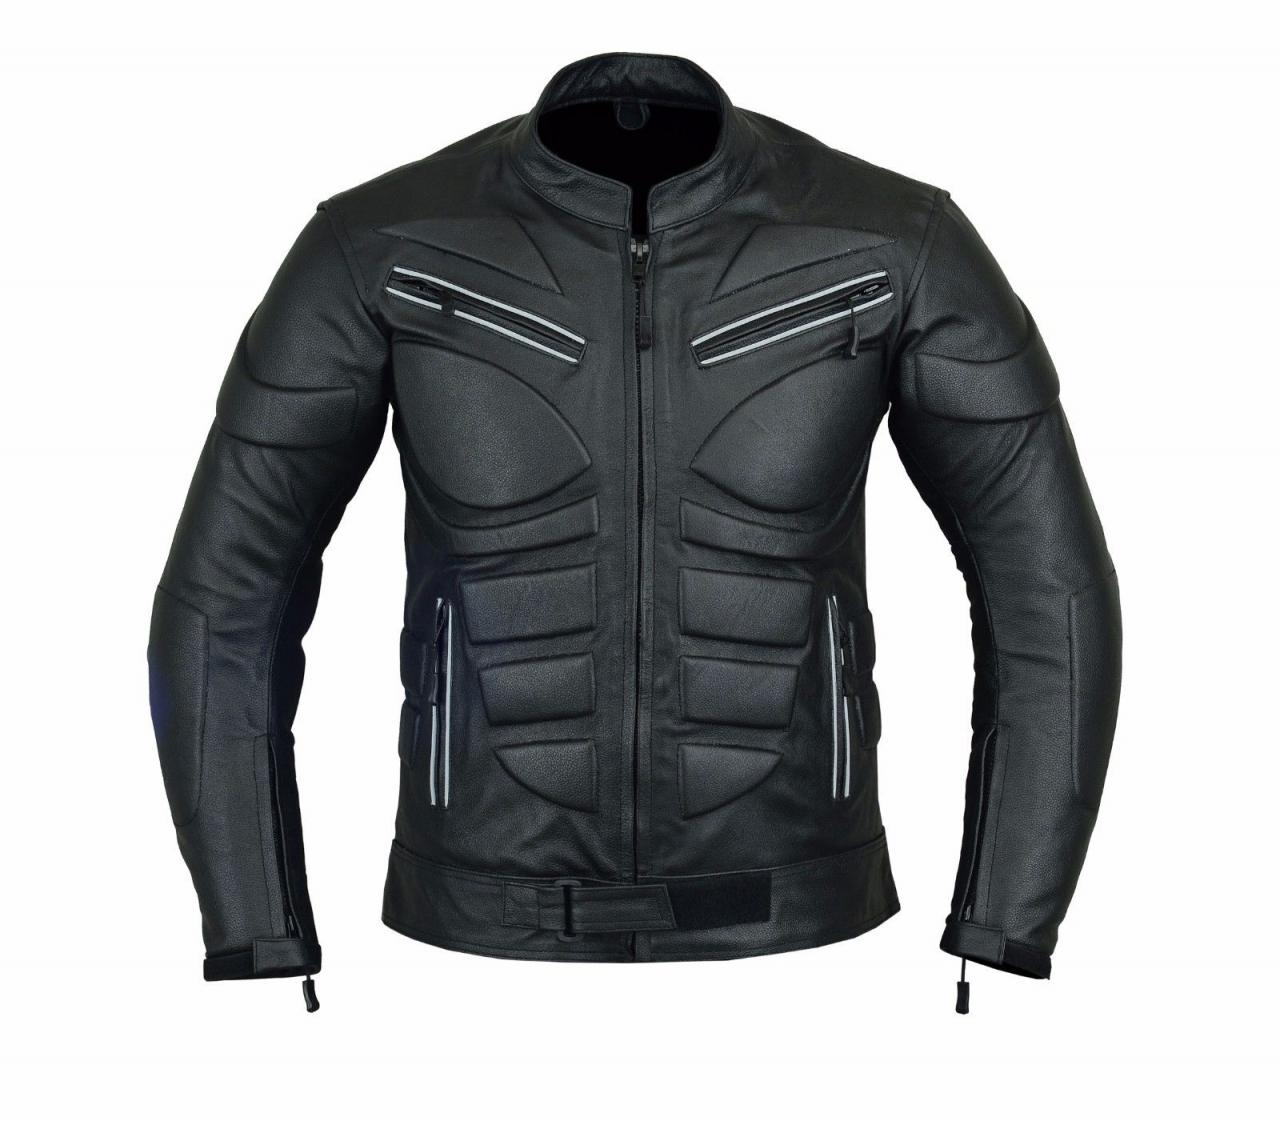 New Men's Leather Jacket Black Slim Fit Biker Motorcycle, MEN LEATHER JACKET